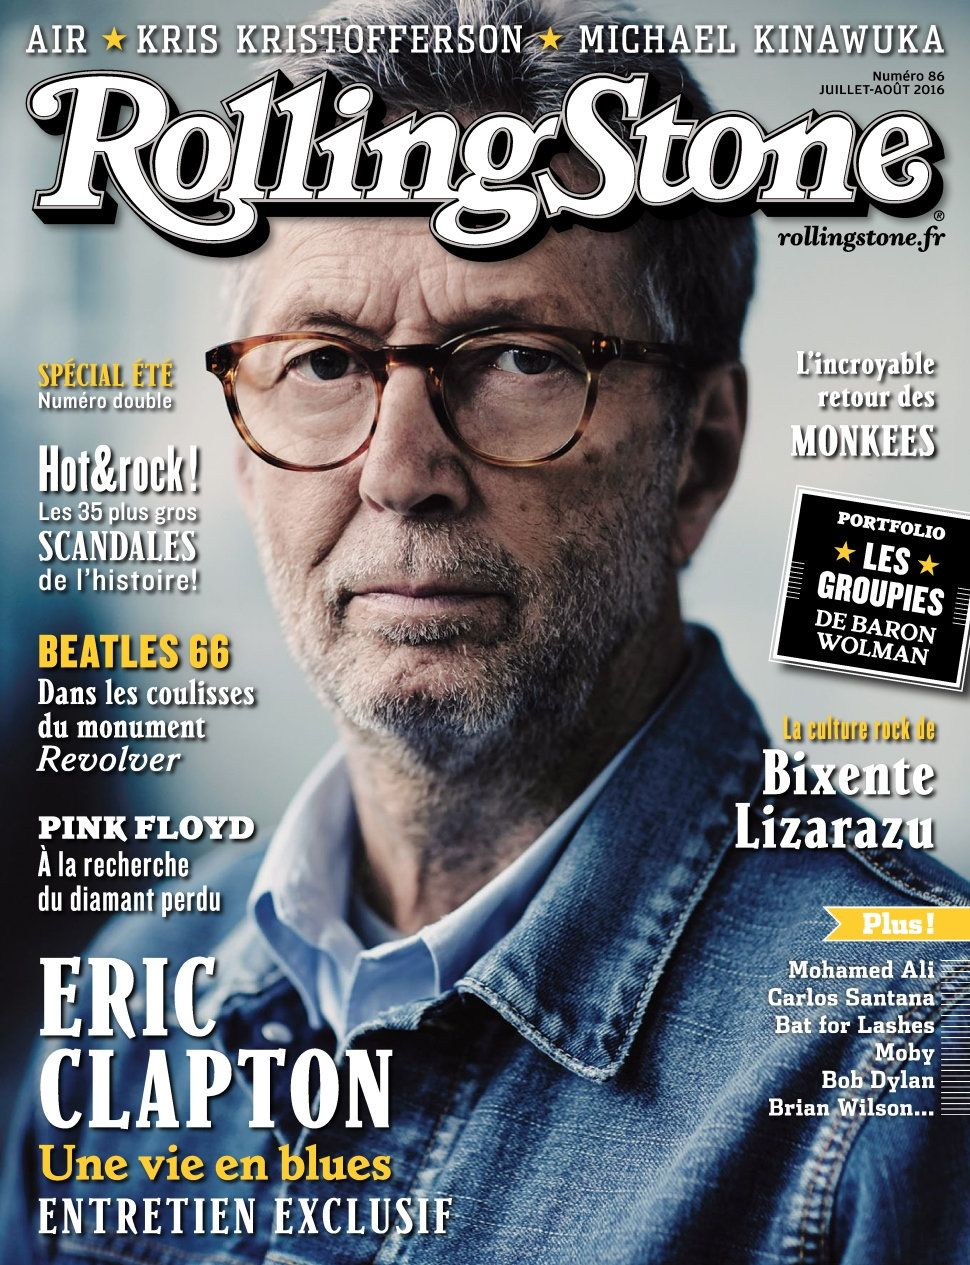 Rolling Stone 86 - Juillet/Aout 2016